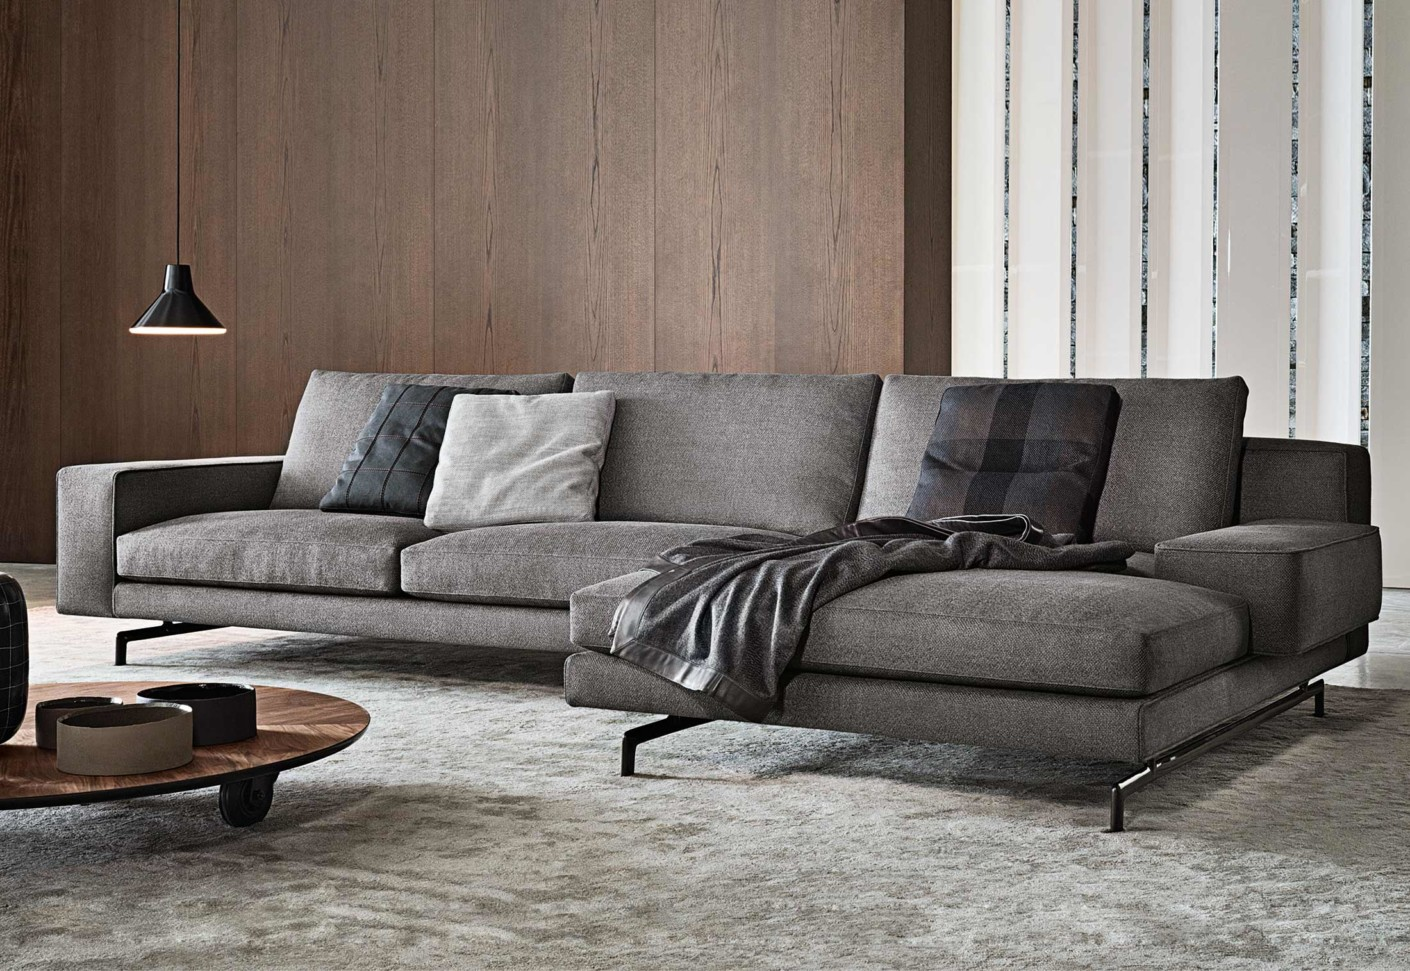 Sherman corner sofa by minotti stylepark for Design sofa gebraucht